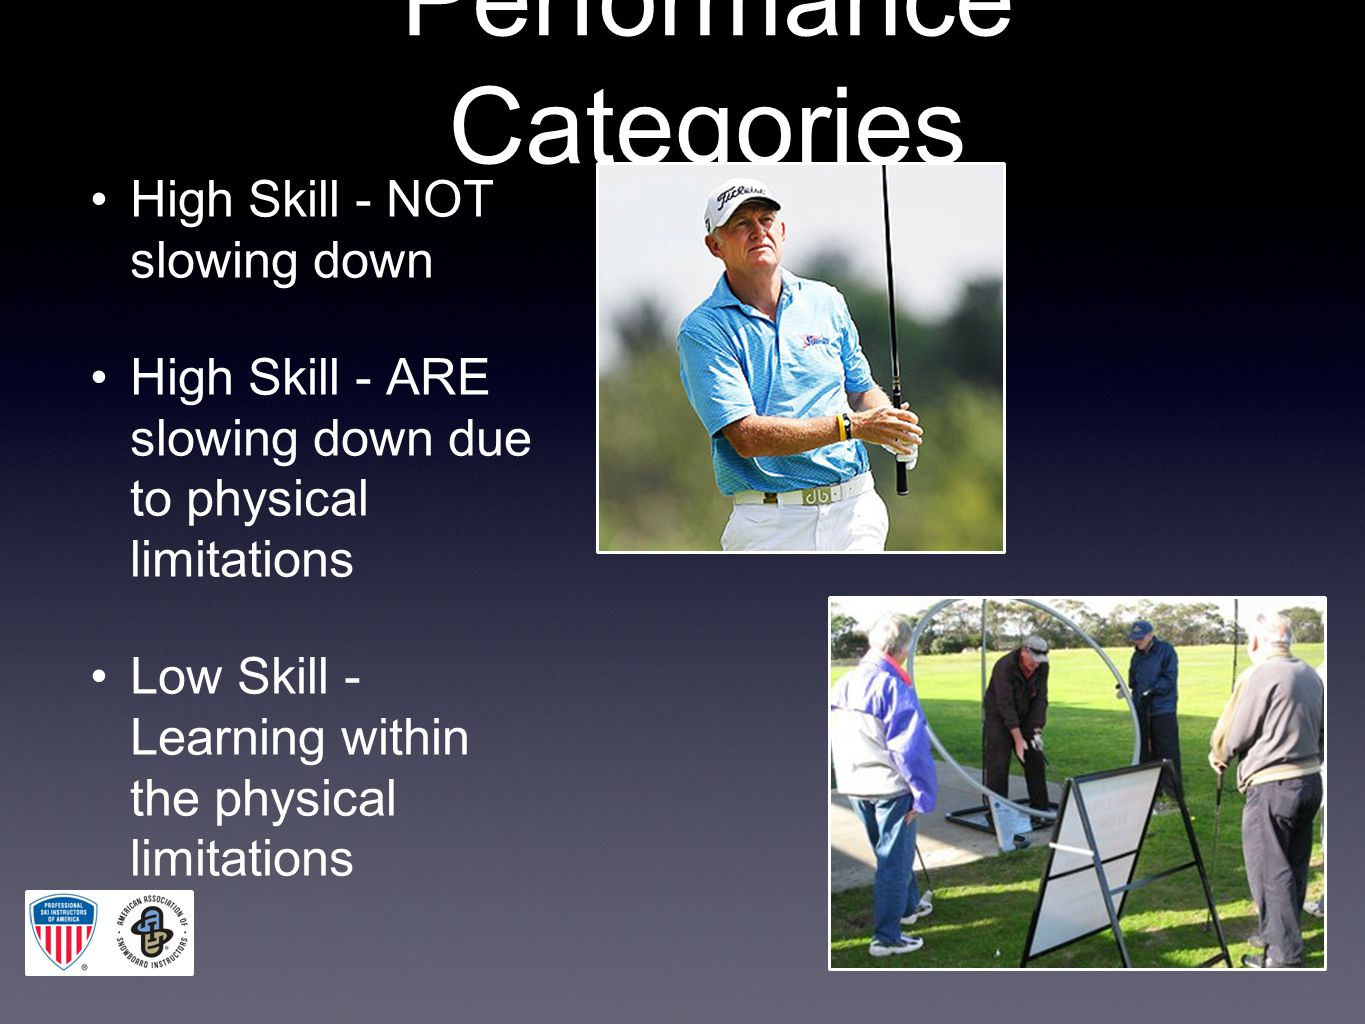 Performance Categories High Skill - NOT slowing down High Skill - ARE slowing down due to physical limitations Low Skill - Learning within the physical limitations